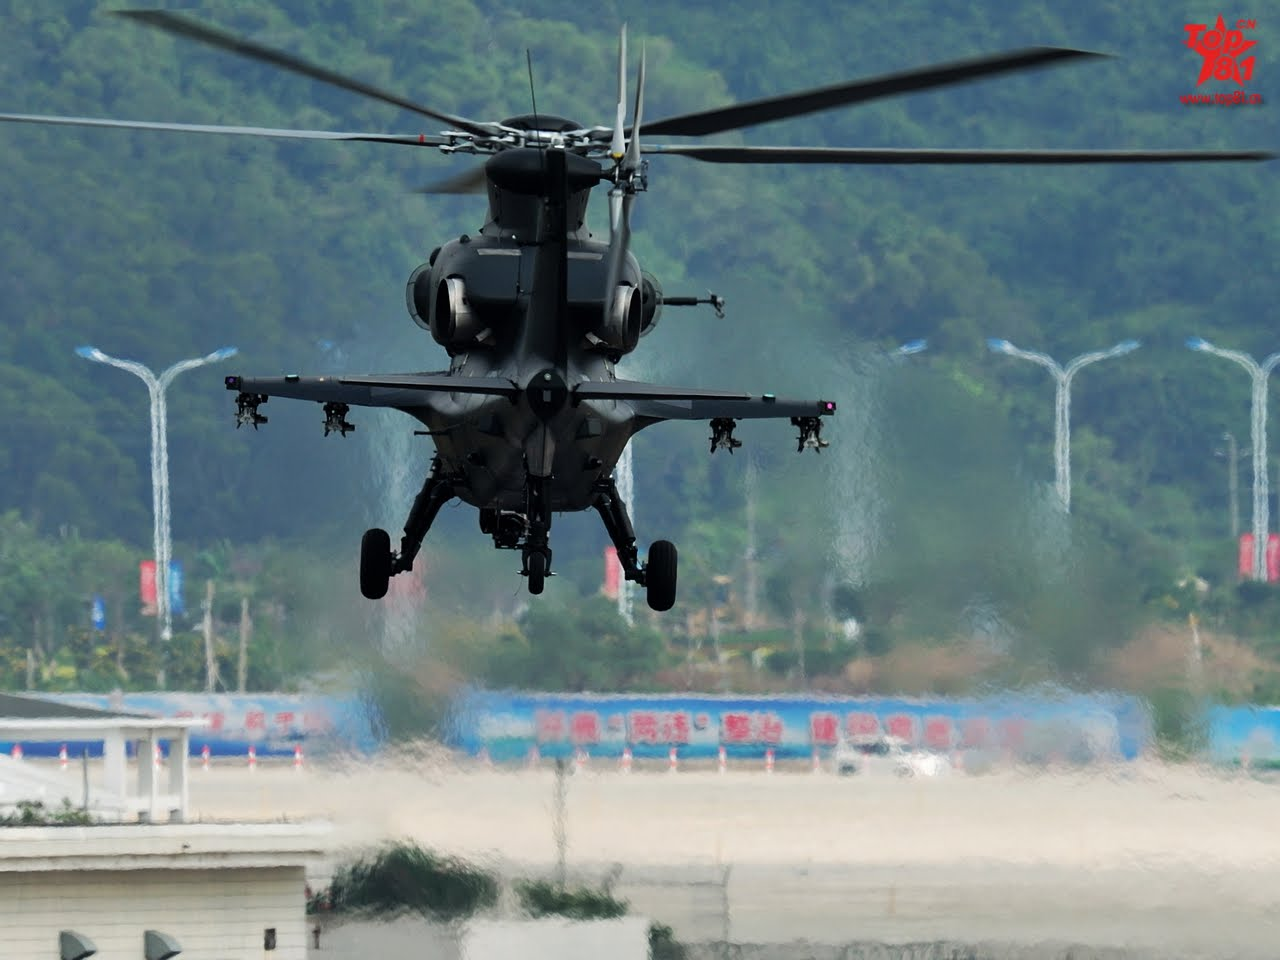 Airshow kicks off in Zhuhai - Asian Defence News Today